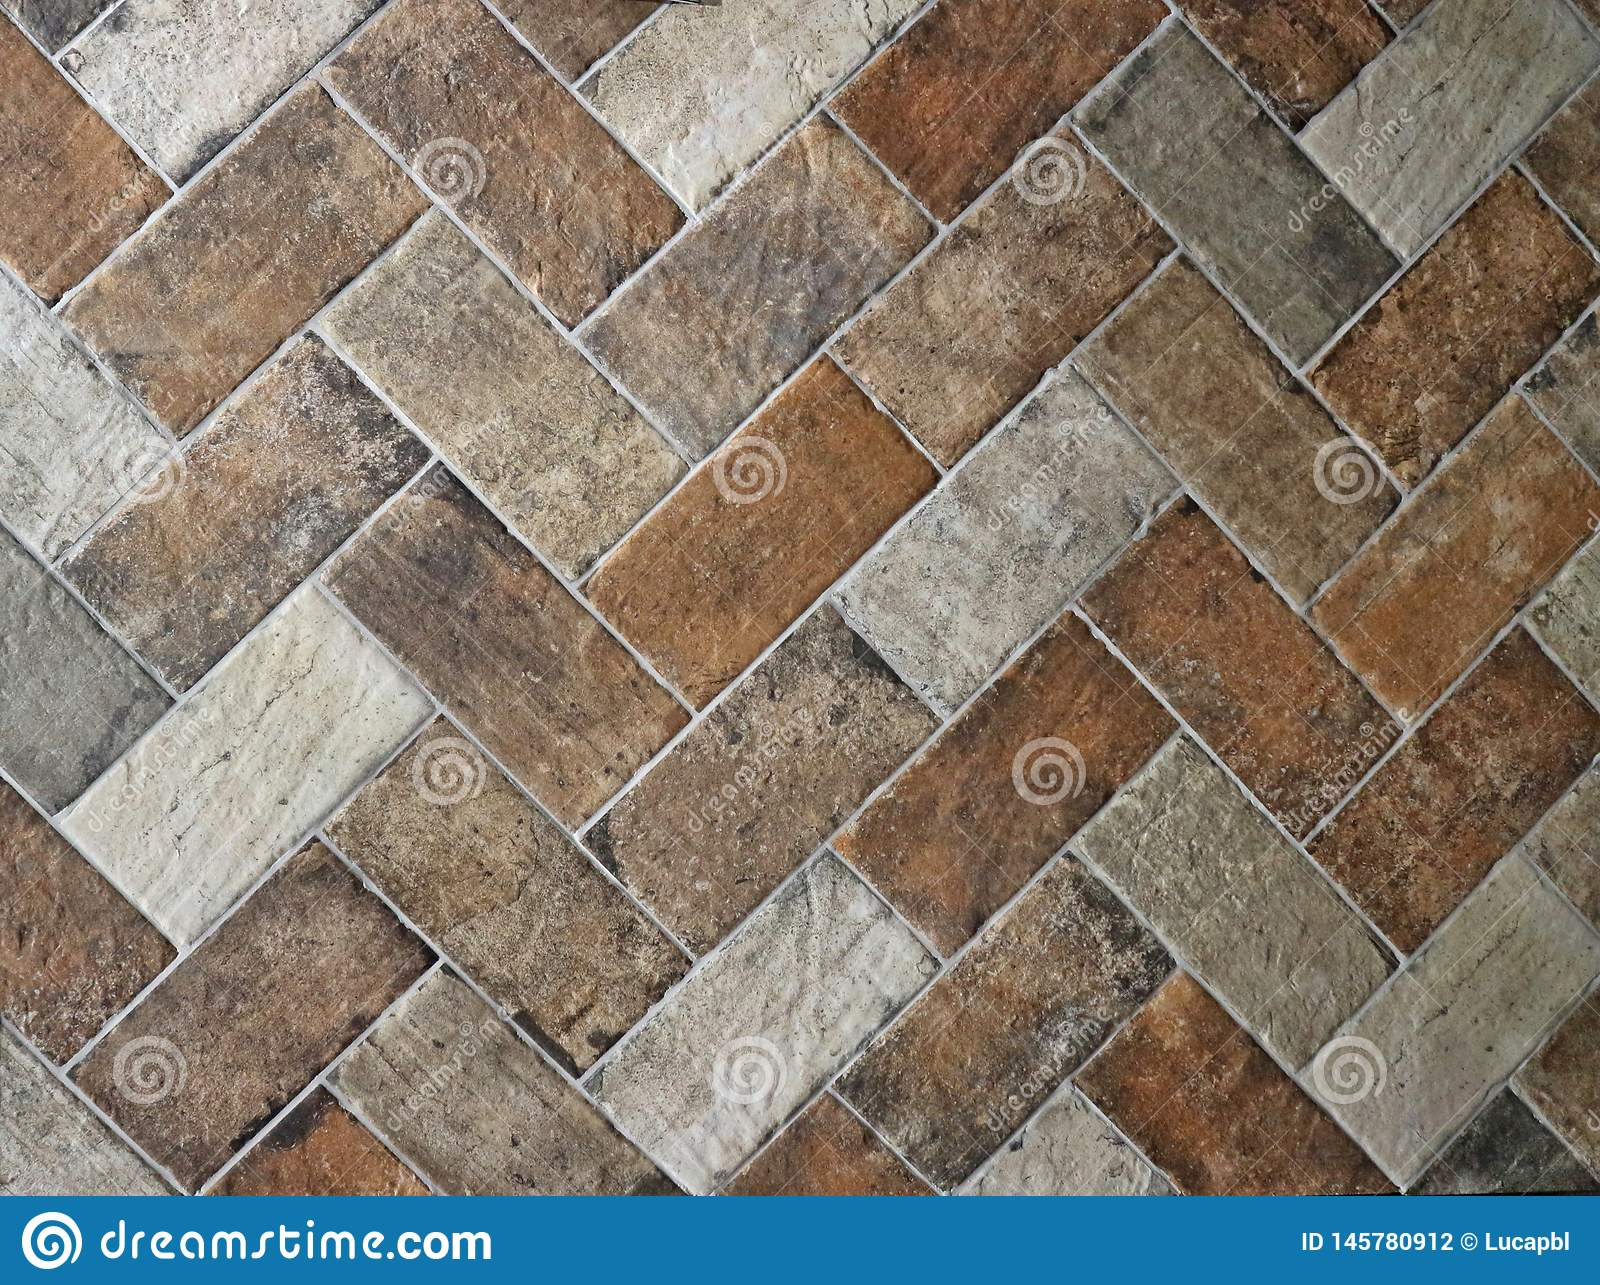 https www dreamstime com rustic floor texture made white brown terracotta tiles house interior rustic floor texture made white brown image145780912